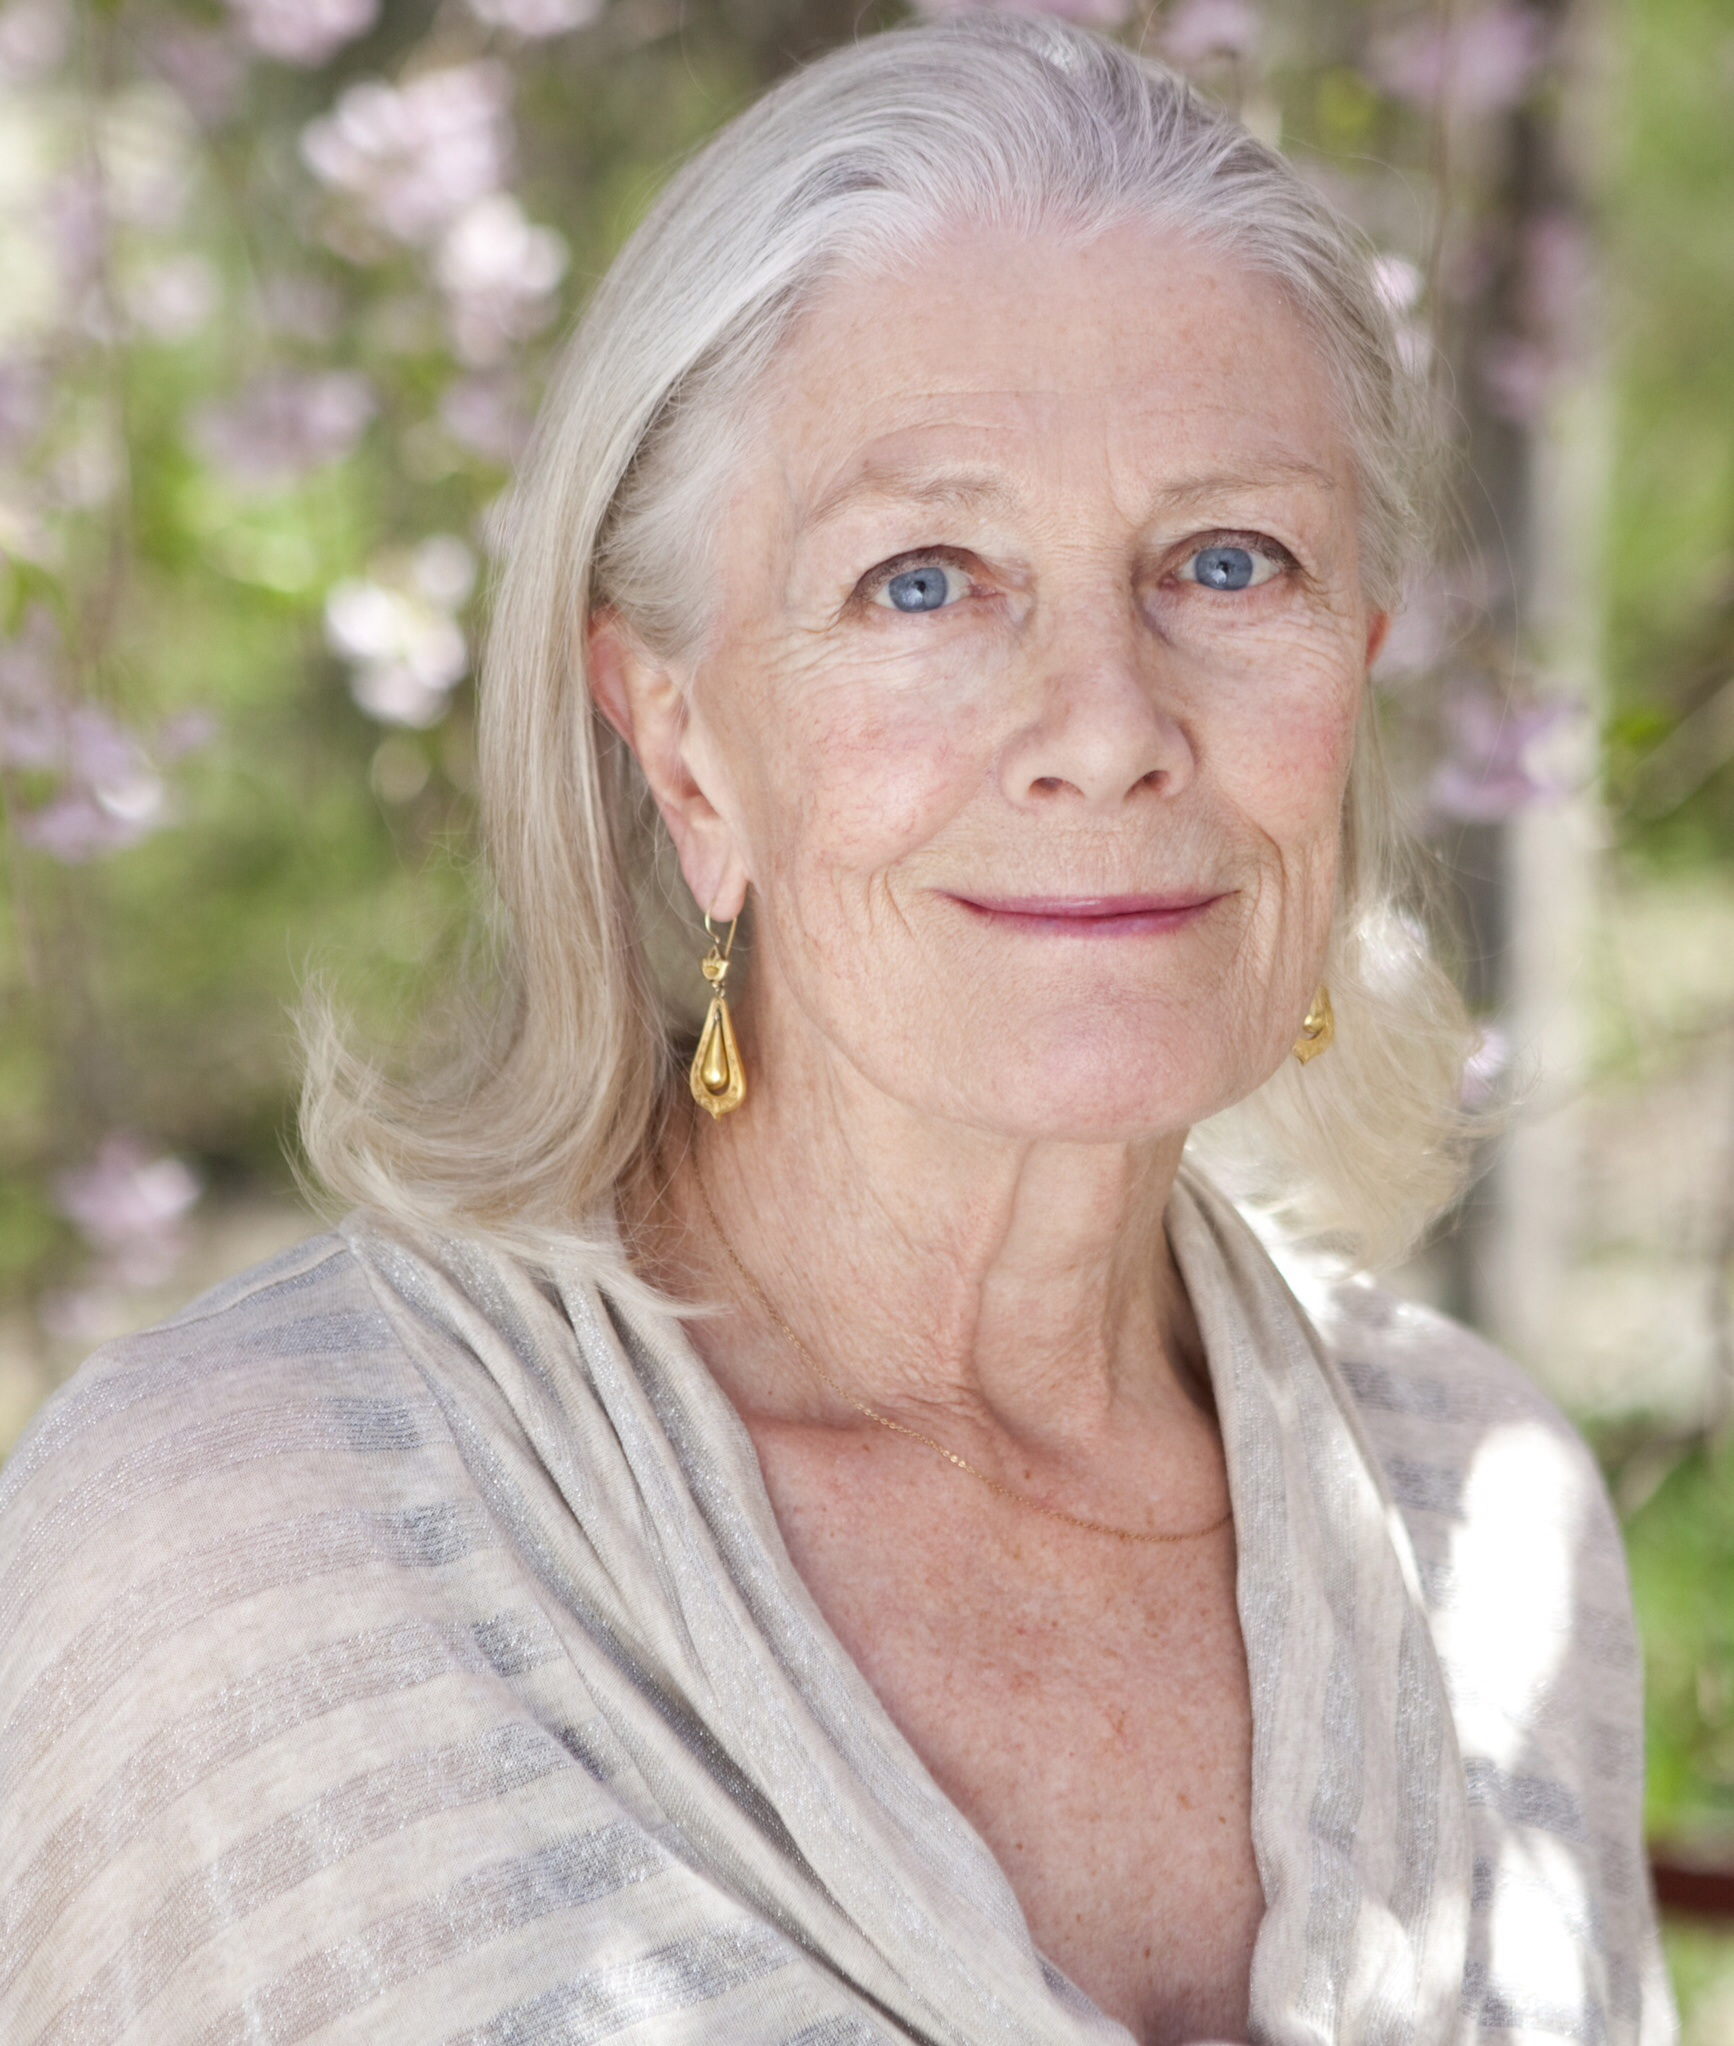 Vanessa Redgrave nudes (52 foto and video), Pussy, Fappening, Boobs, braless 2018